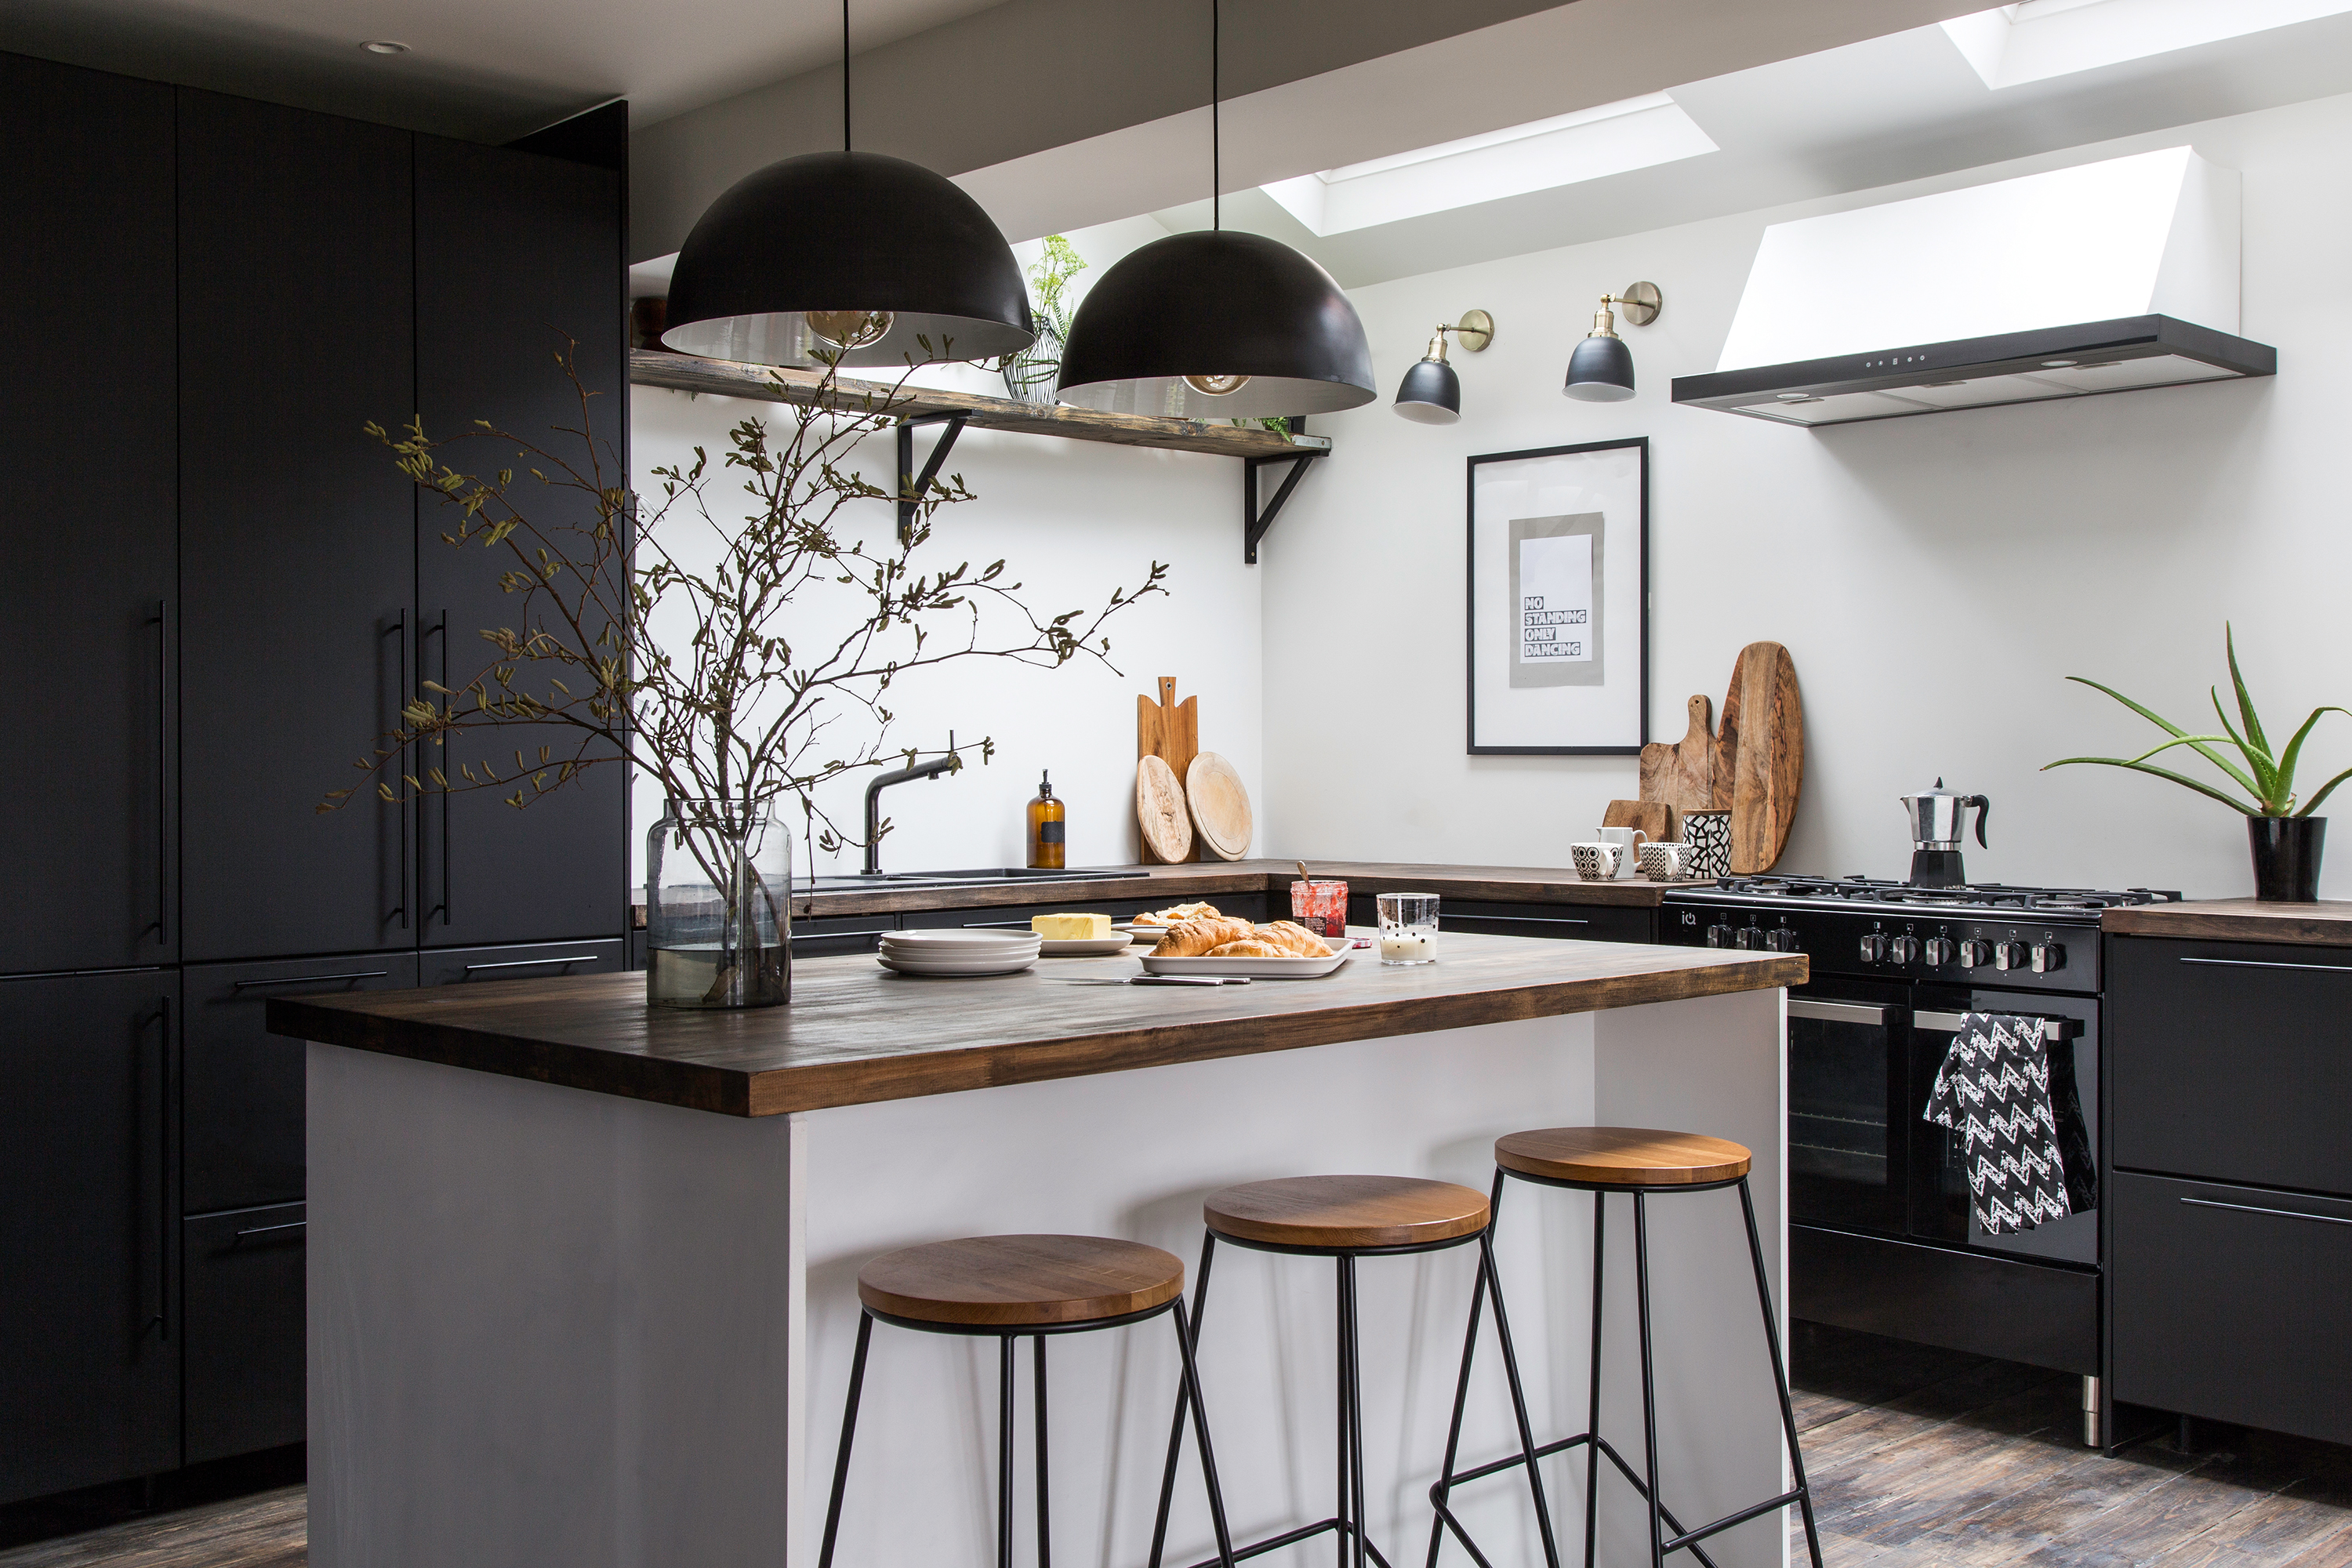 Kitchens on a budget 15 ways to design a stylish space real homes